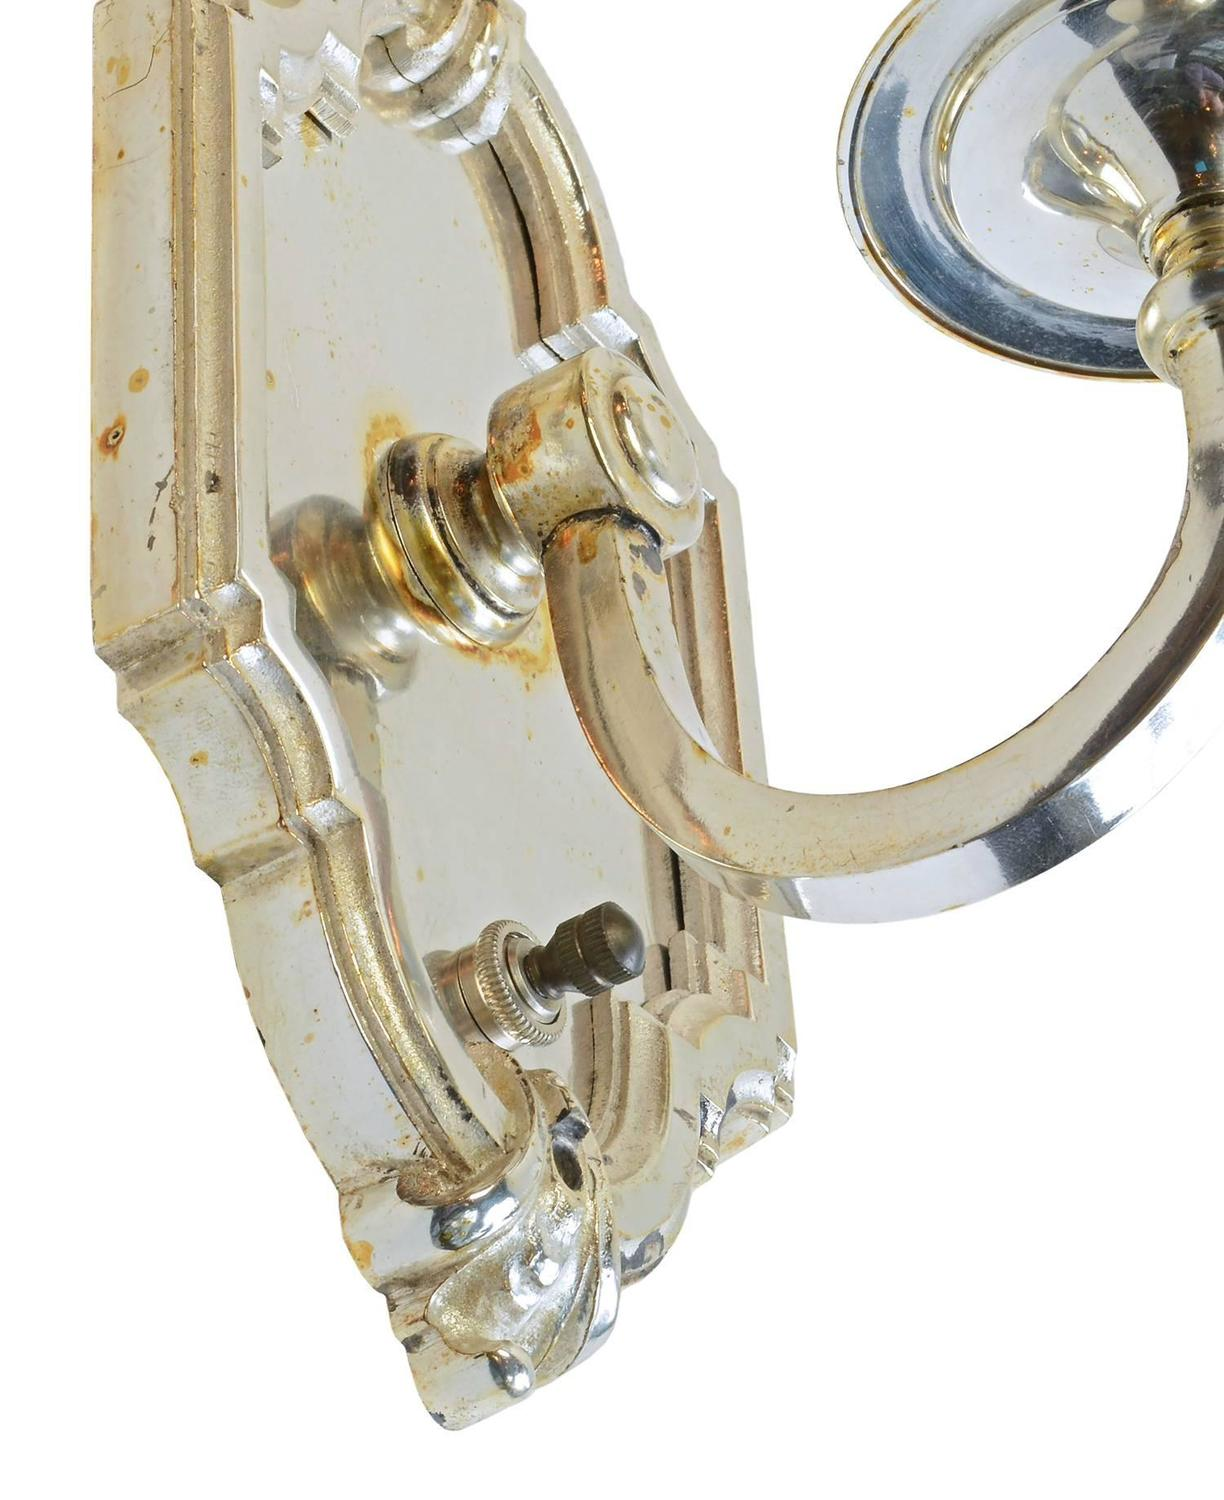 Silver Plated Single Candle Wall Sconce, circa 1915 at 1stdibs on Silver Wall Sconces For Candles id=33039